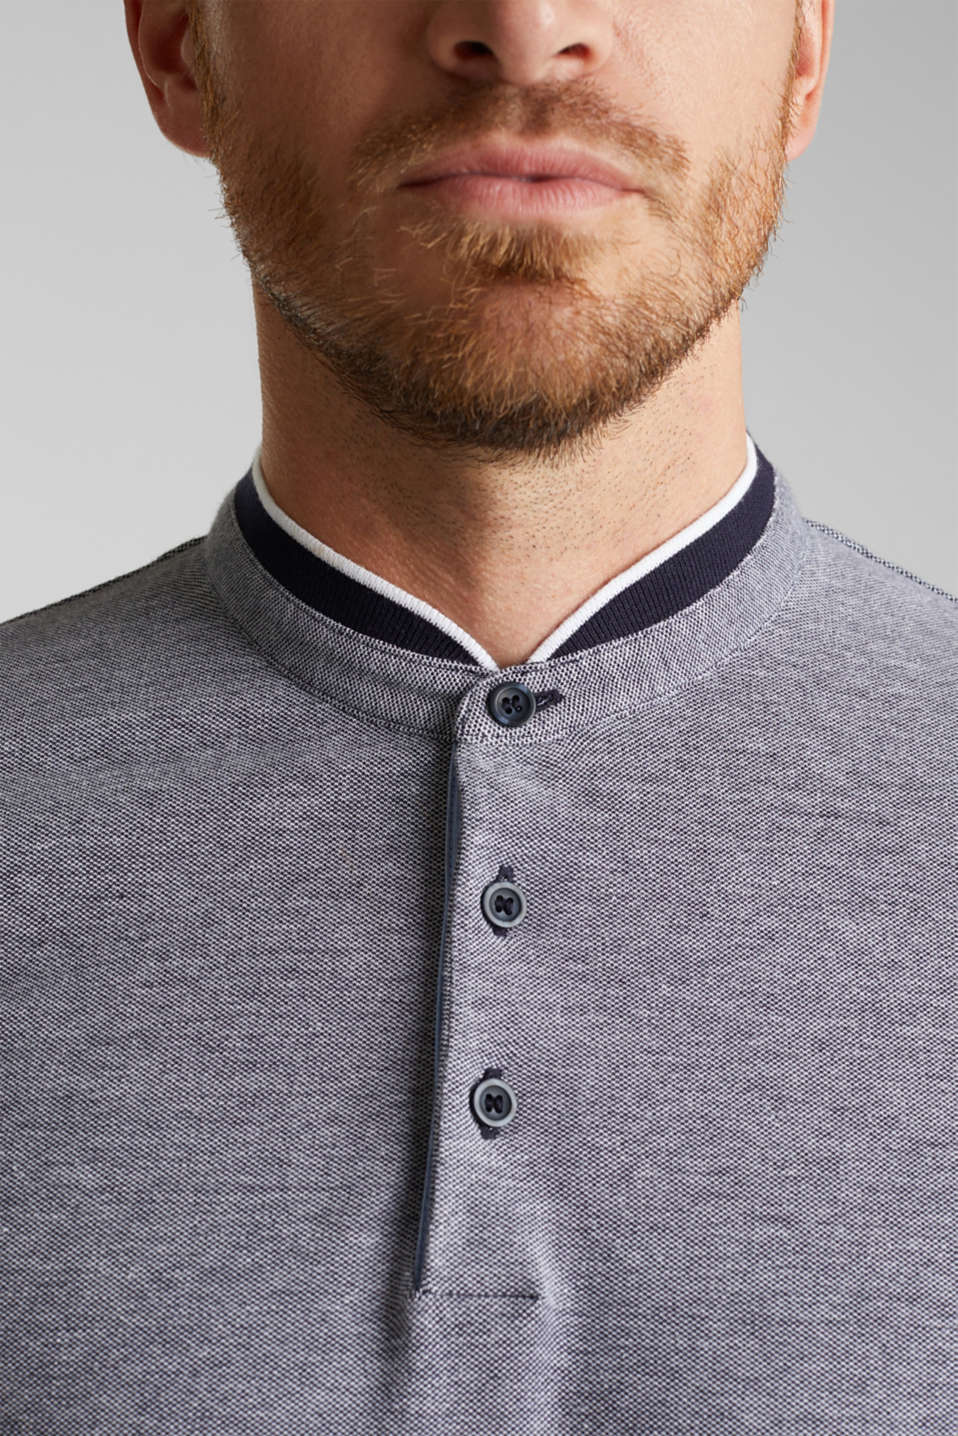 Piqué polo shirt with a stand-up collar, NAVY 2, detail image number 1